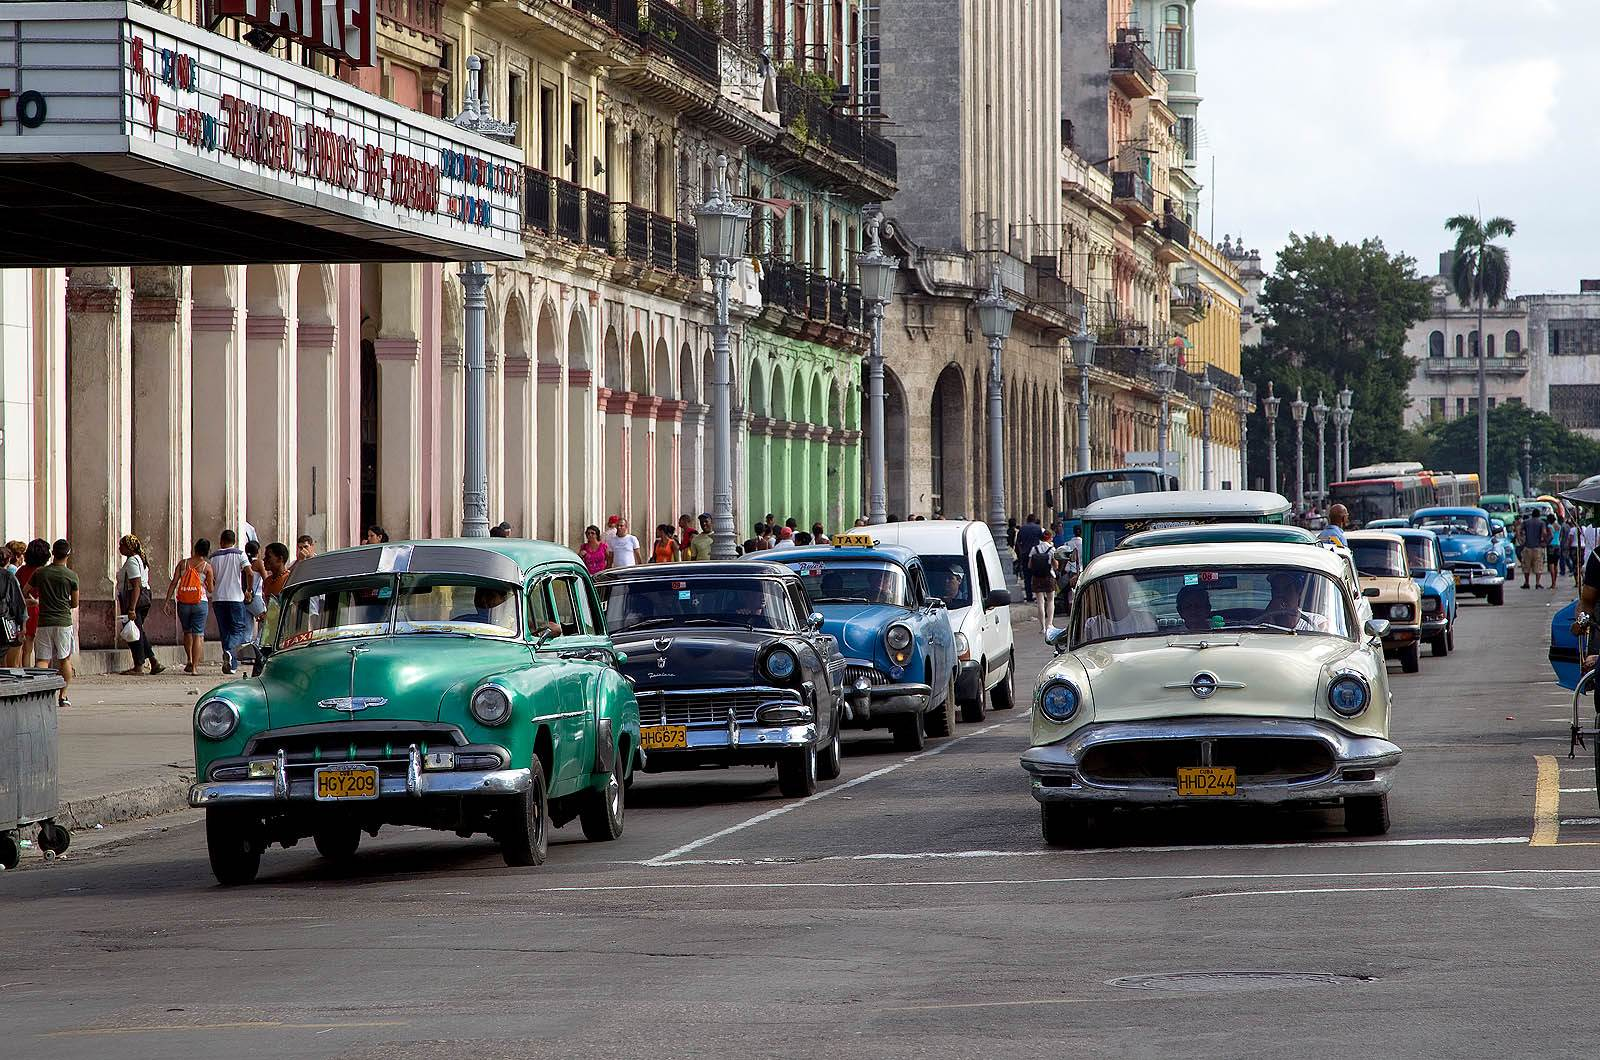 Picture special: Cars in Cuba